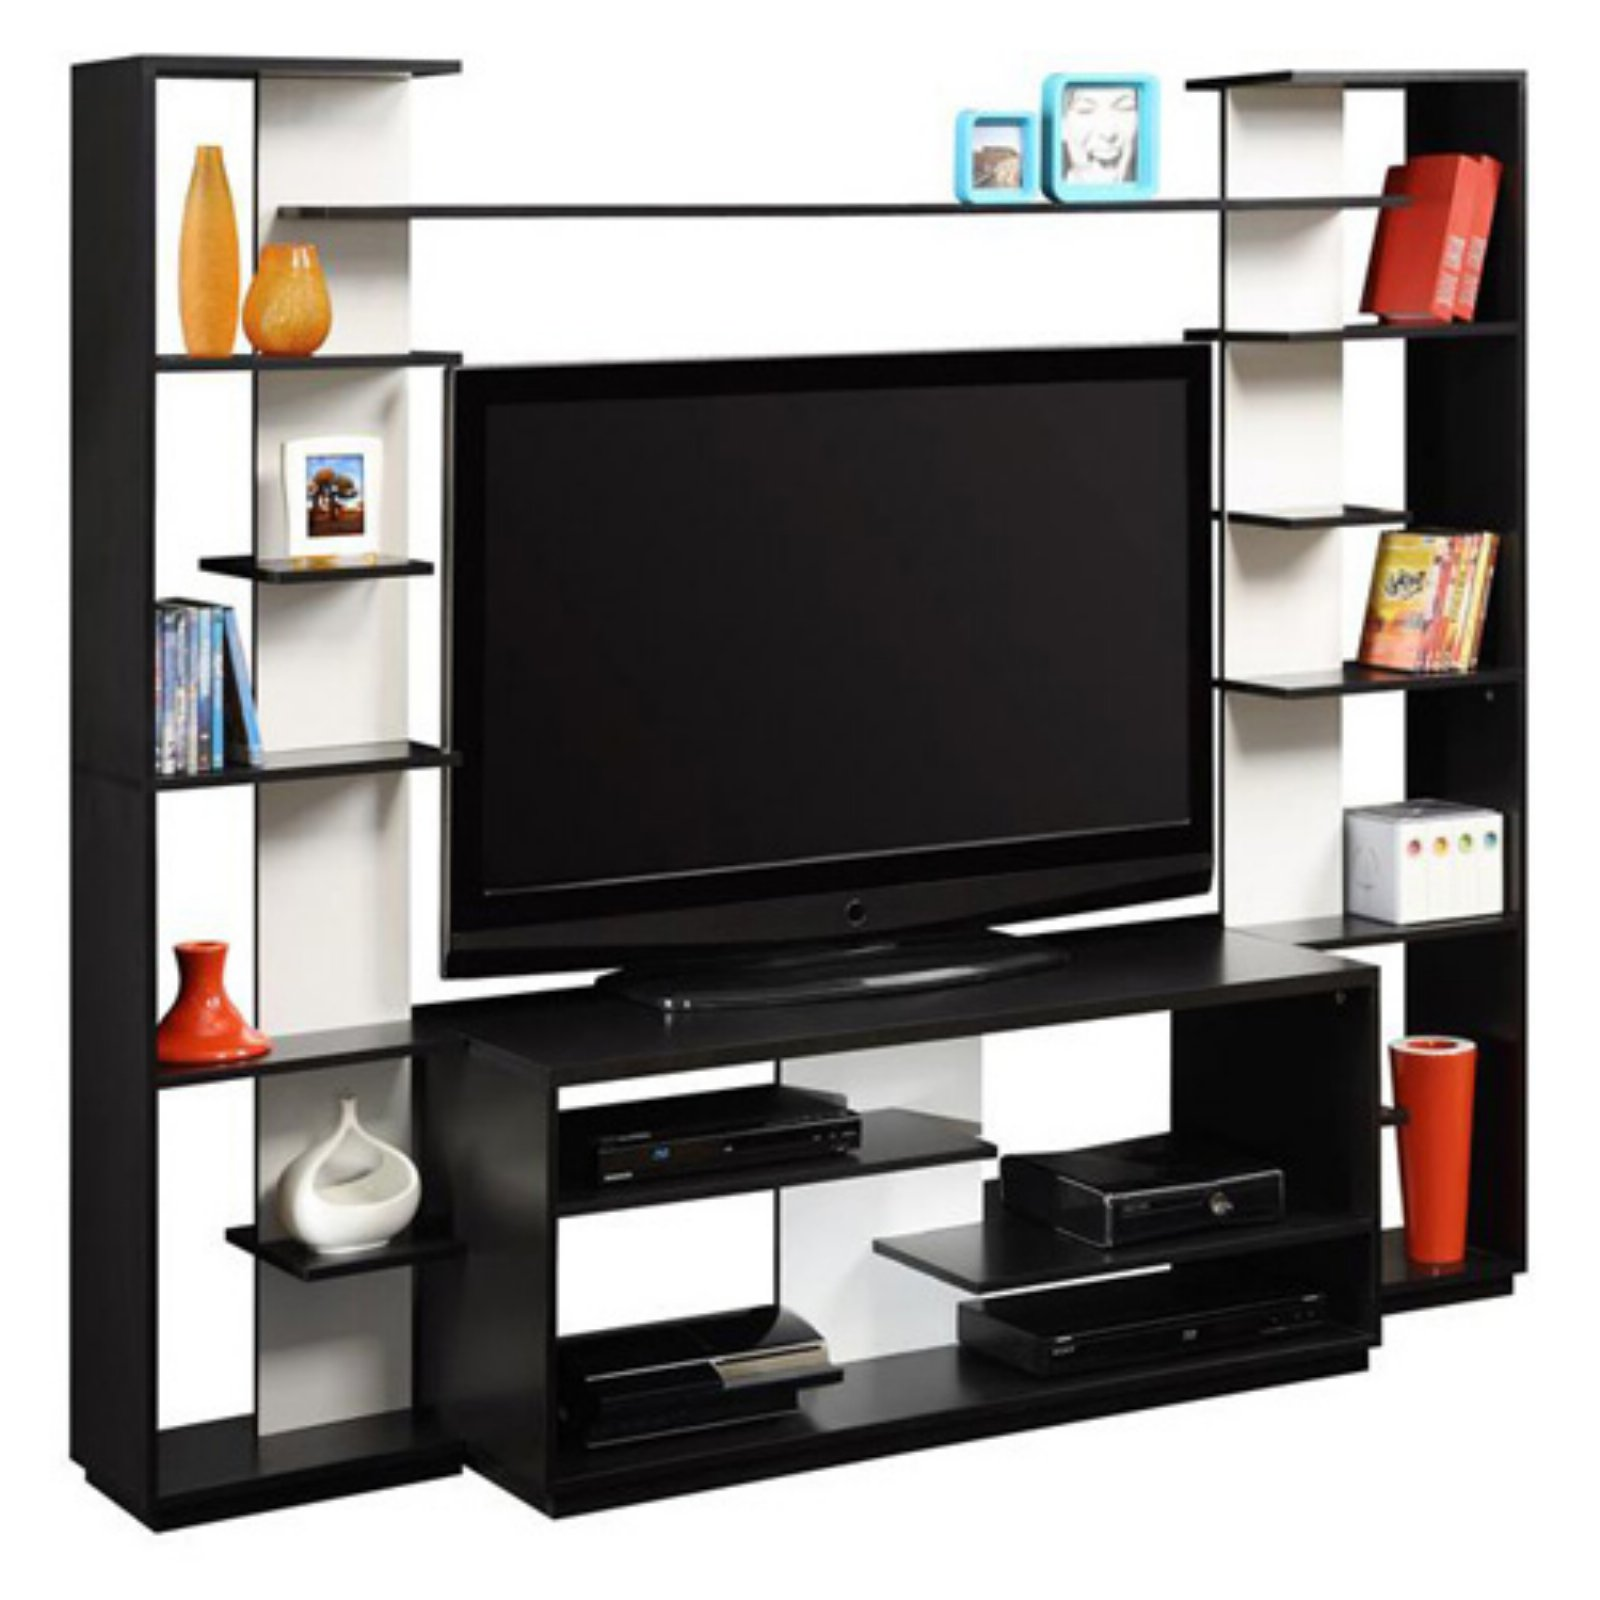 Altra Black and White Home Entertainment Center with Two Reversible Back Panels for TVs up to 45